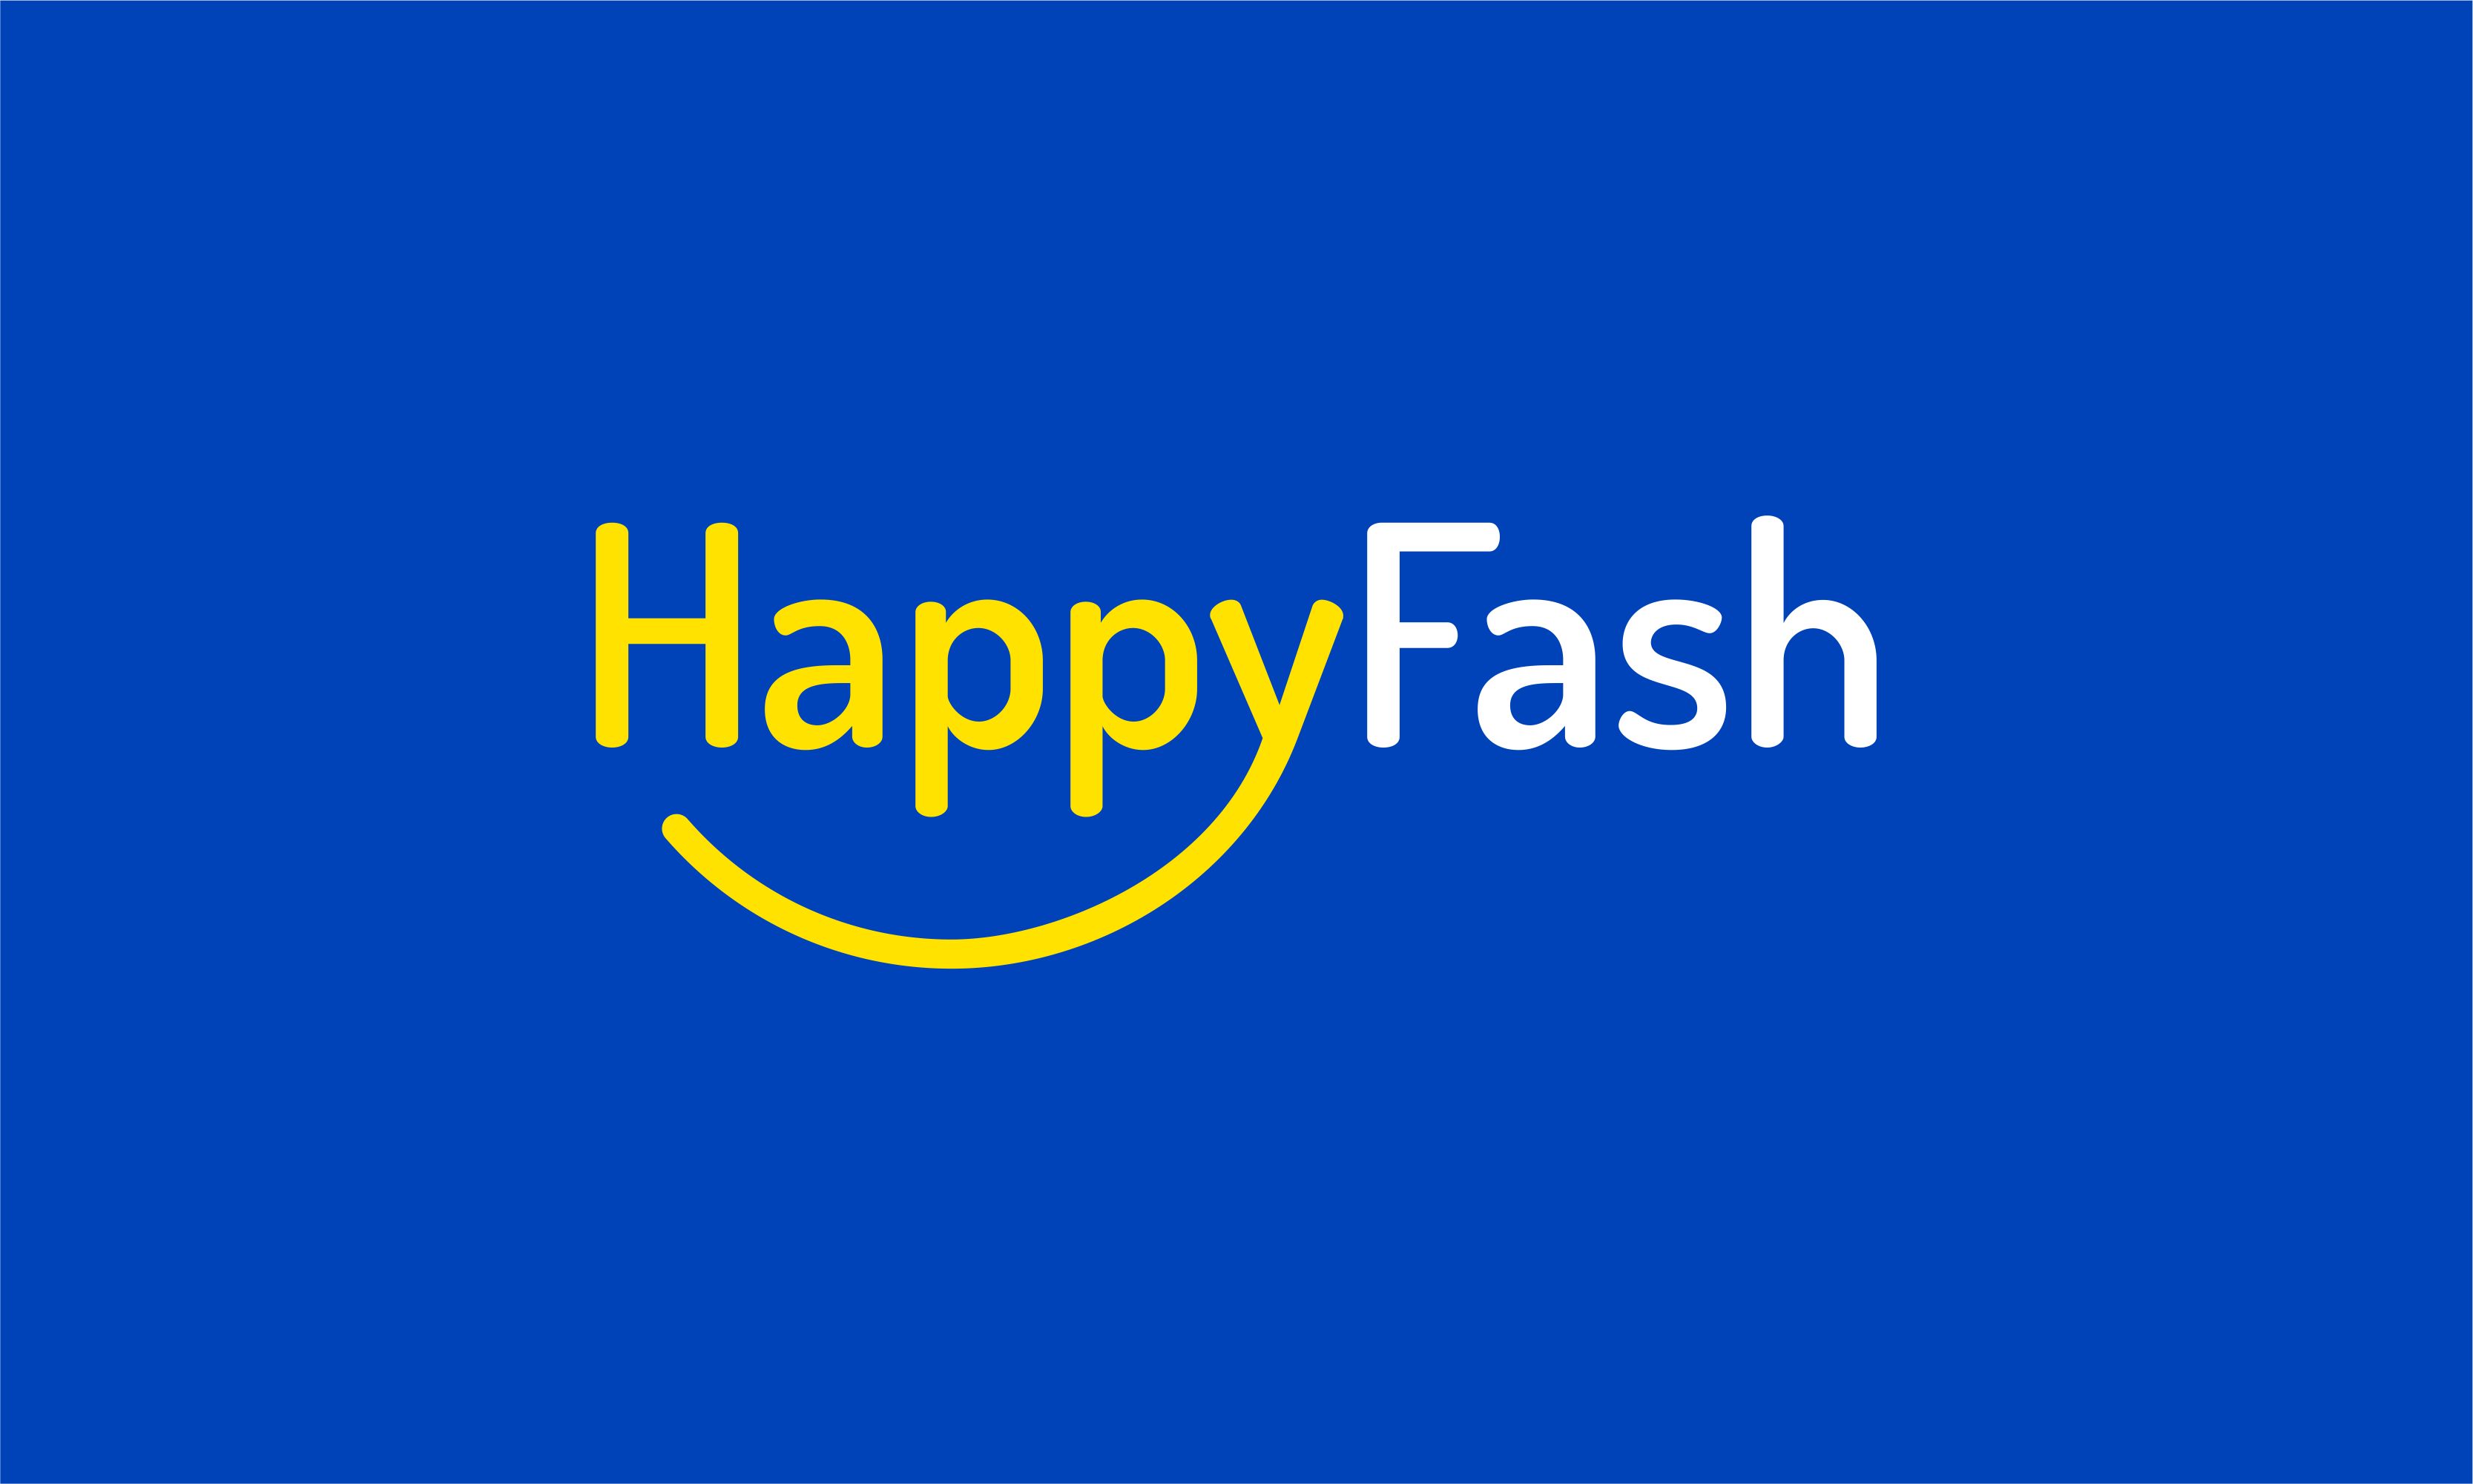 Happyfash